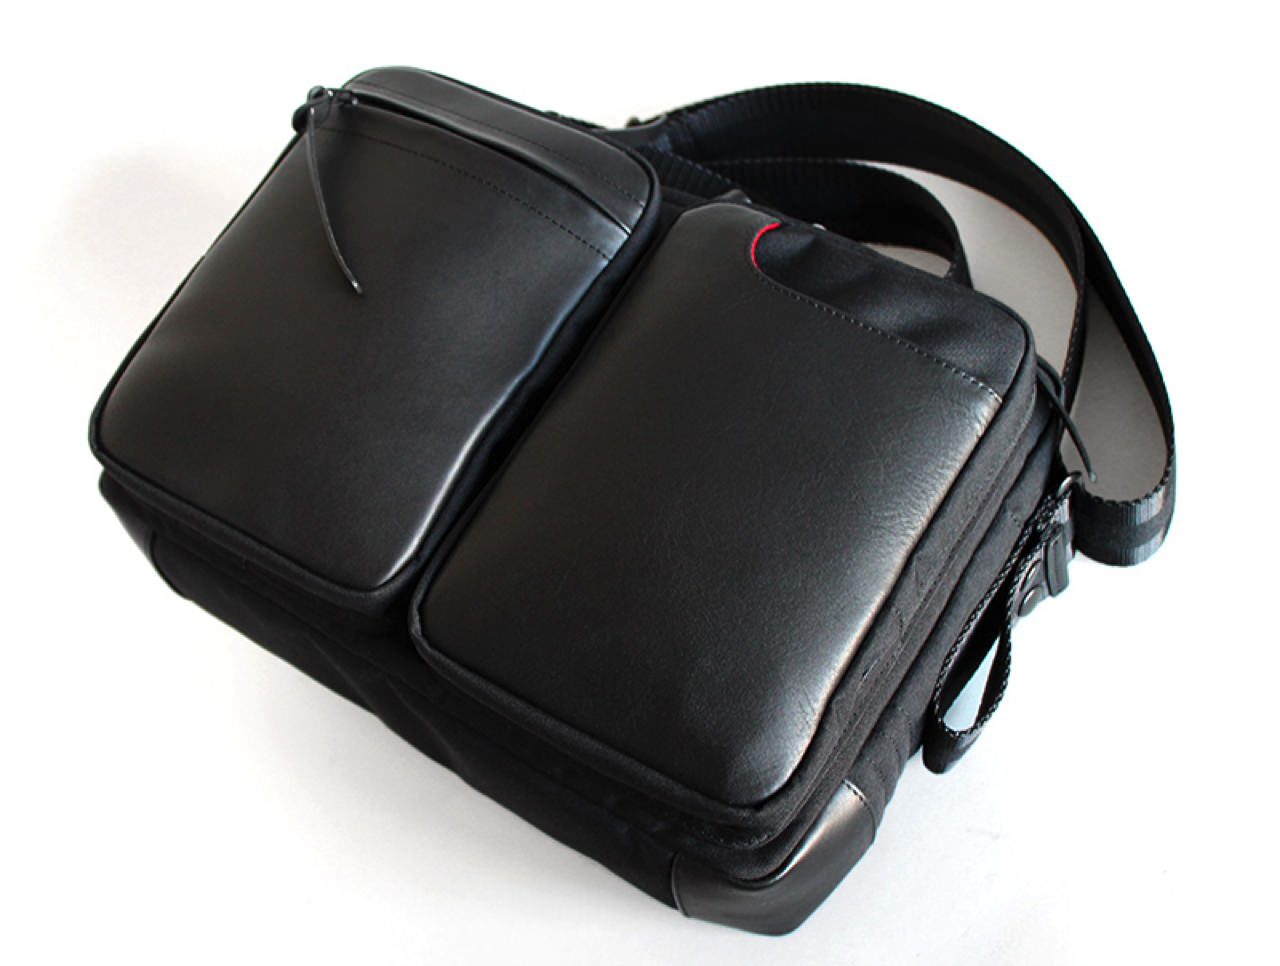 Reservation of the small shoulder bag 4g for the tablet started7